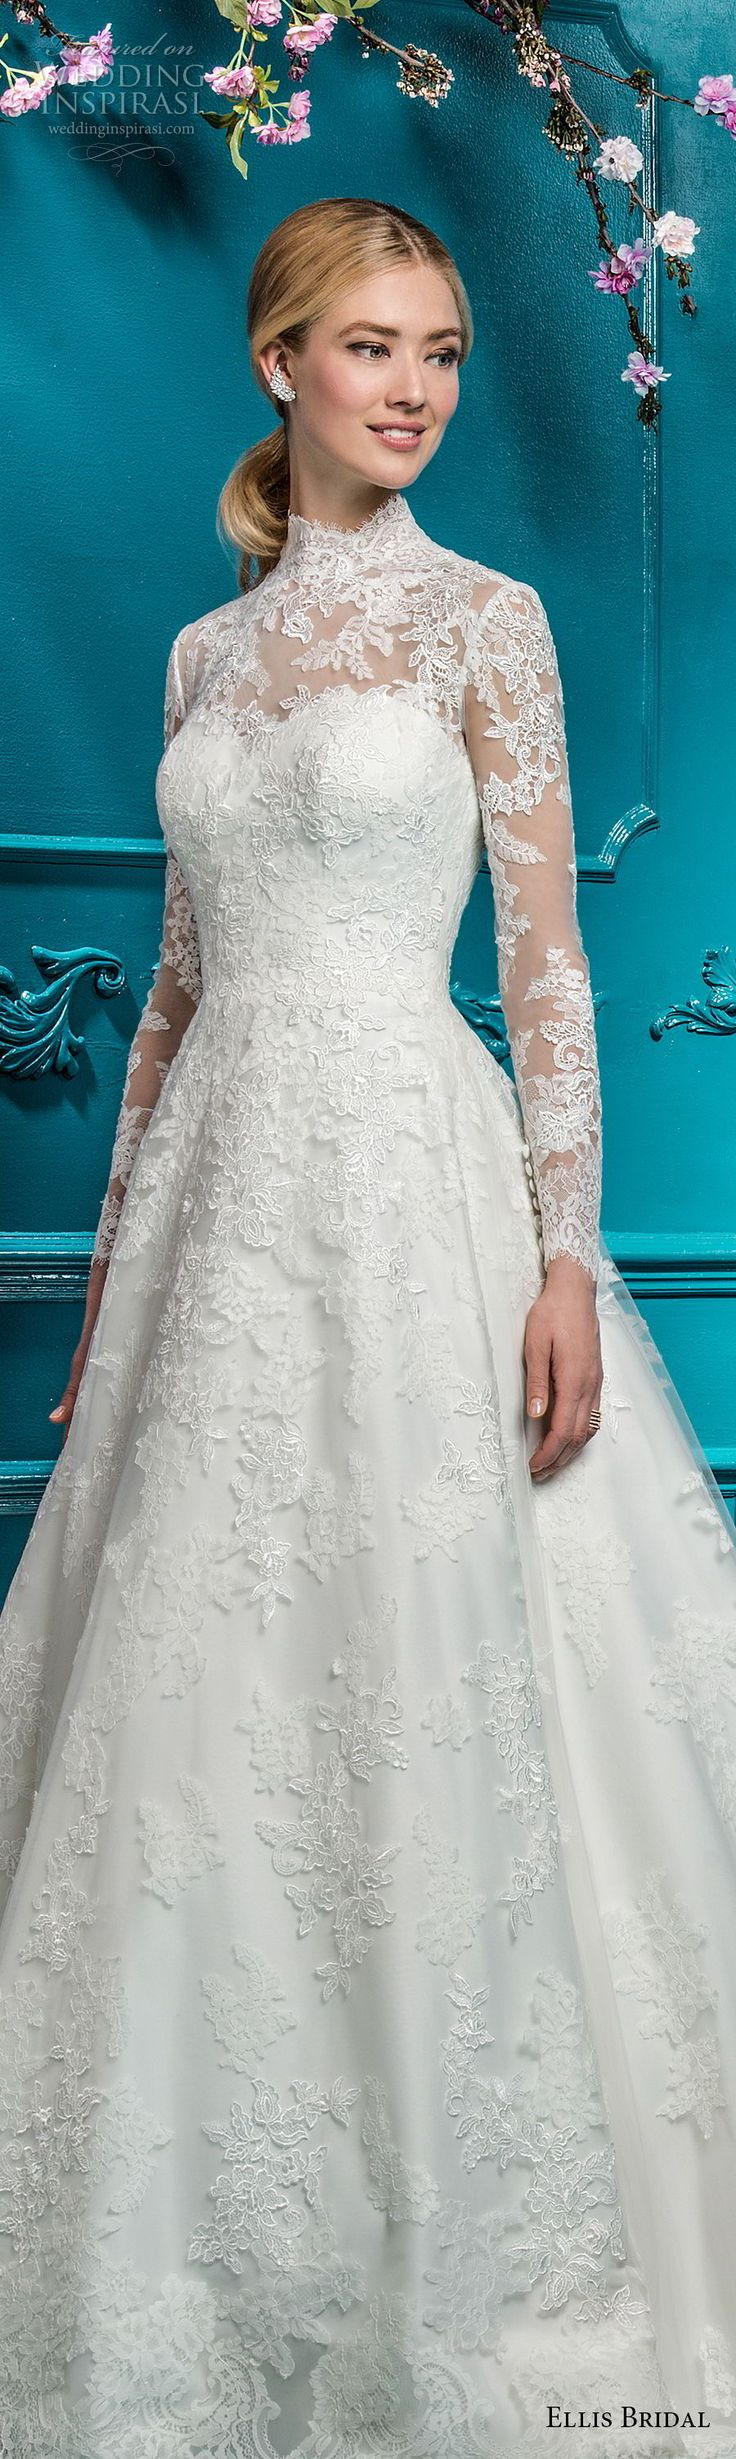 ellis bridals 2018 long sleeves illusion high neck sweetheart neckline full embellishment elegant princess a line wedding dress covered lace back chapel train (2) lv -- Ellis Bridals 2018 Wedding Dresses